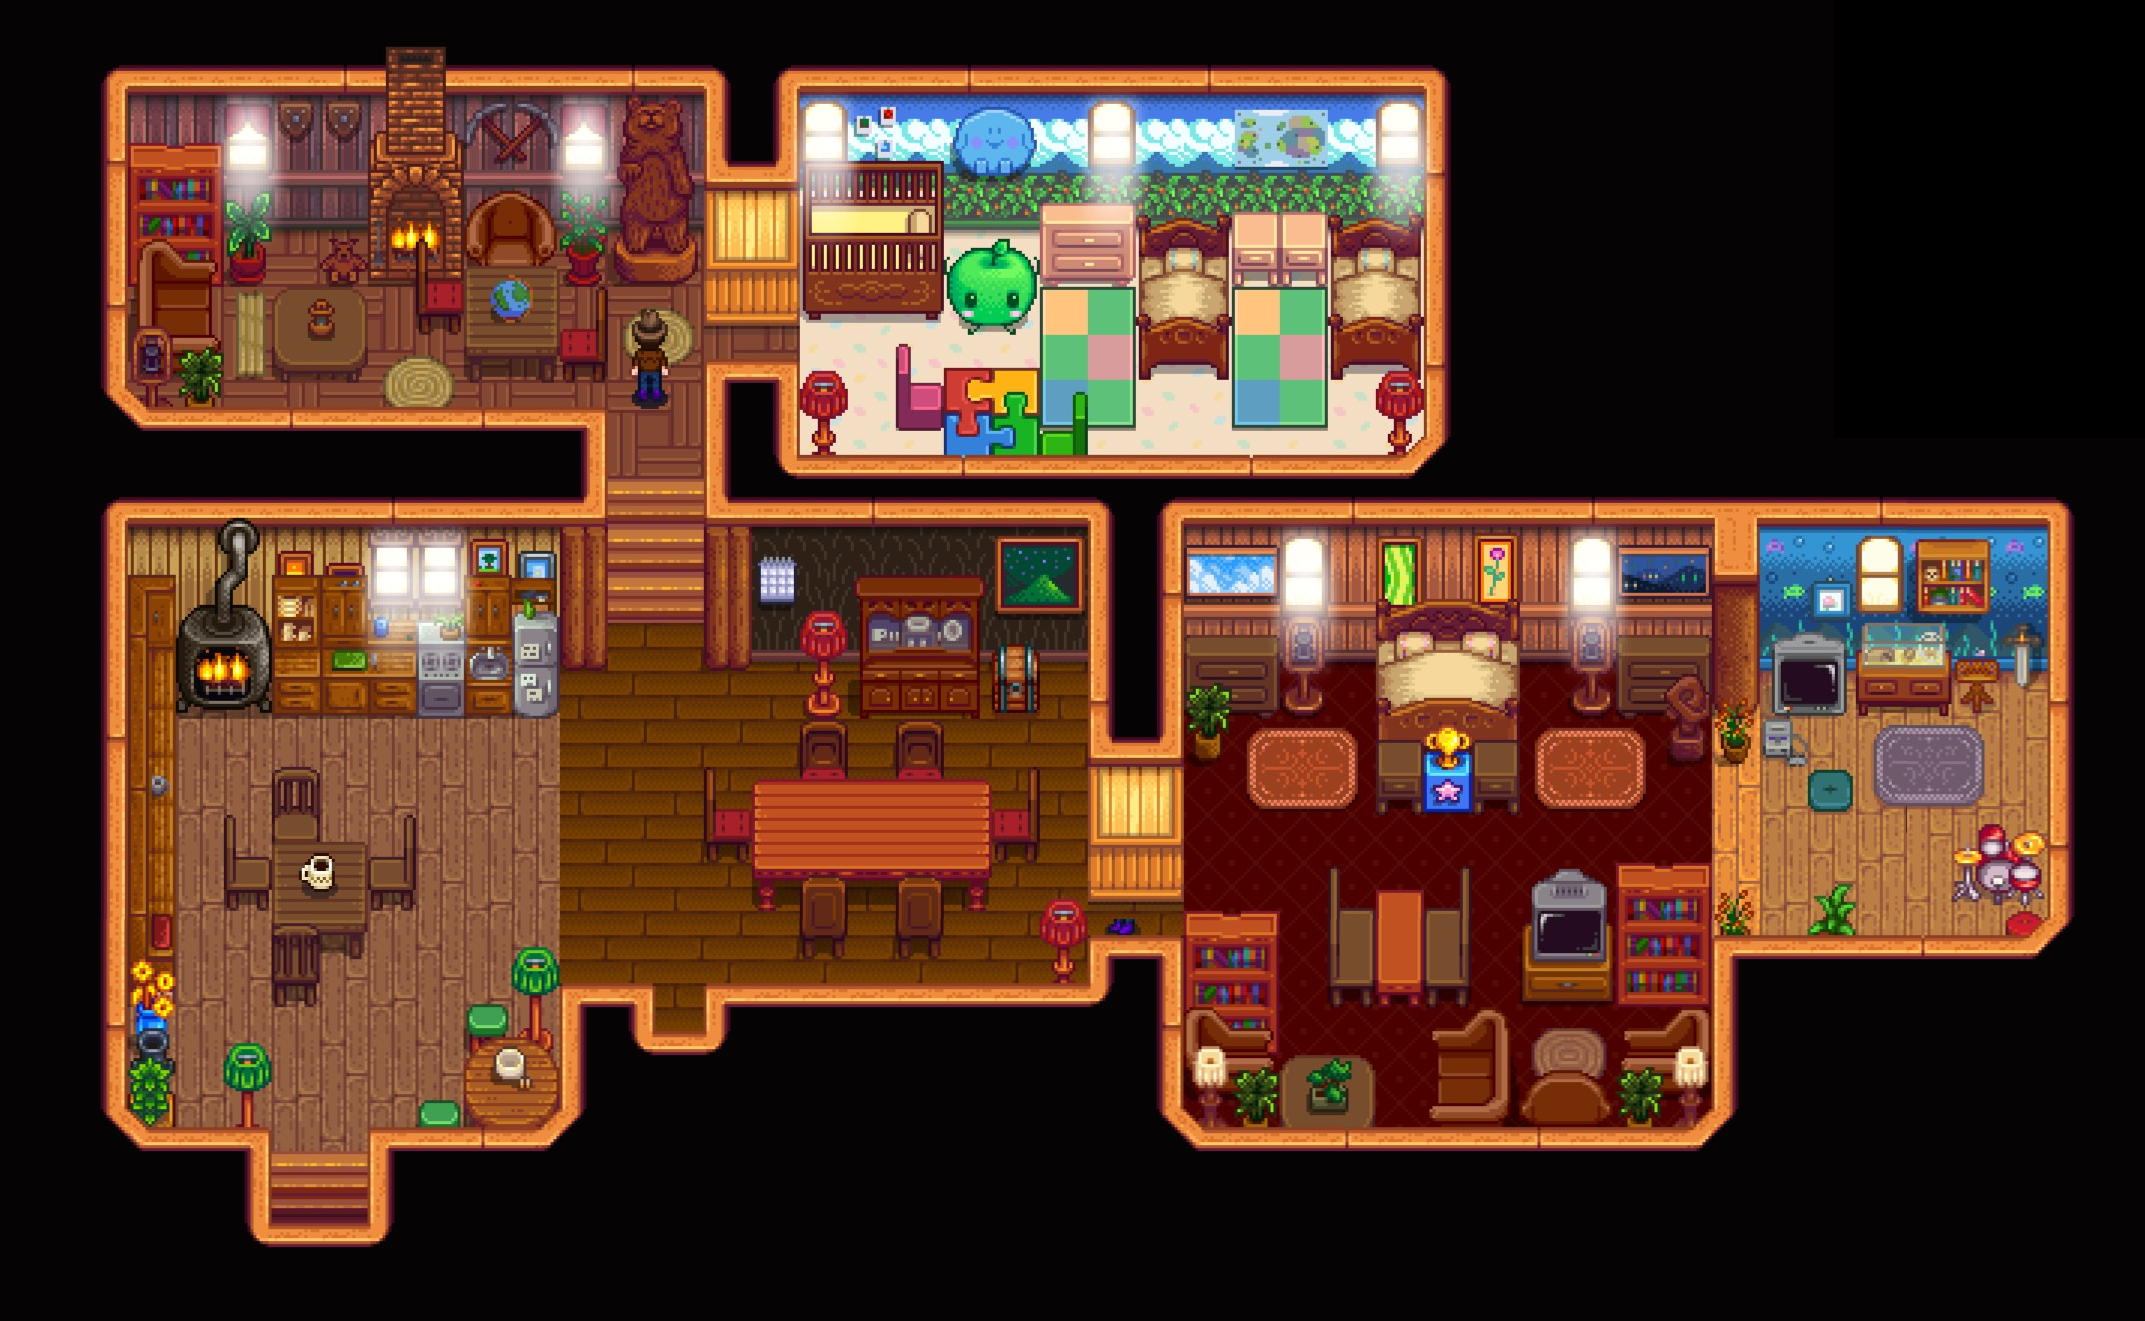 Interior Design Reddit Interior Design Suggestions Stardewvalley